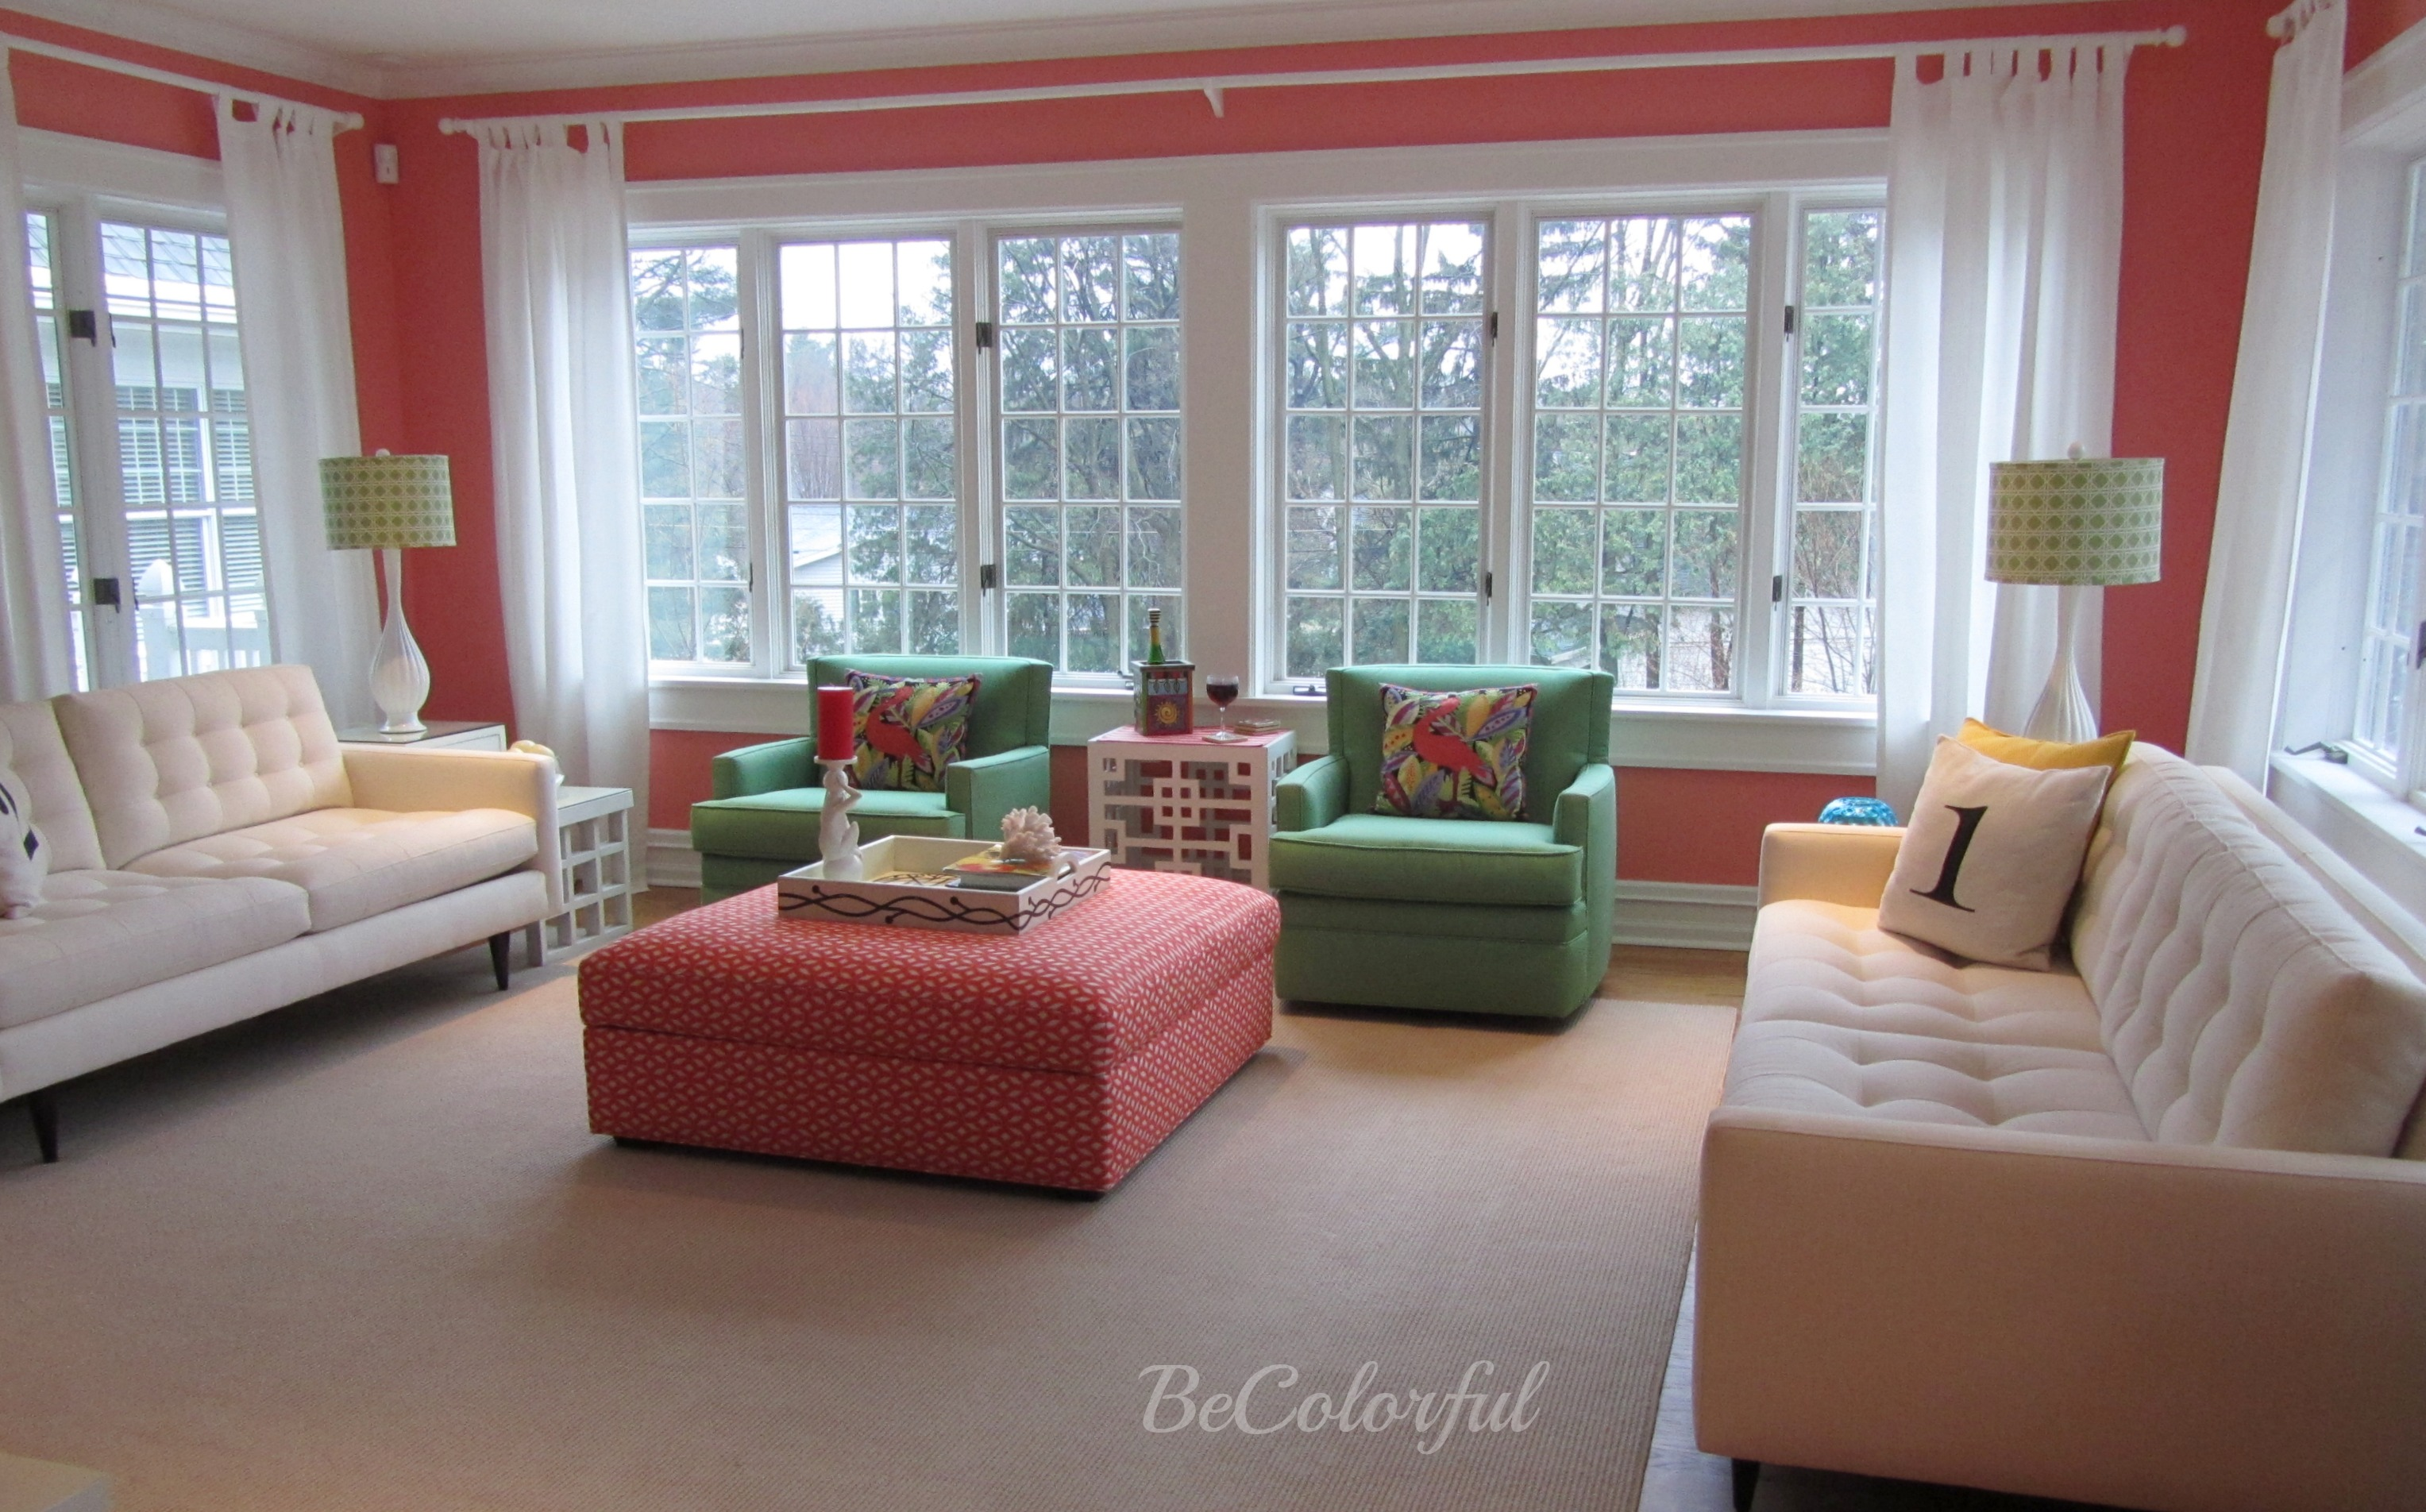 The Green Room That Went Coral Becolorful